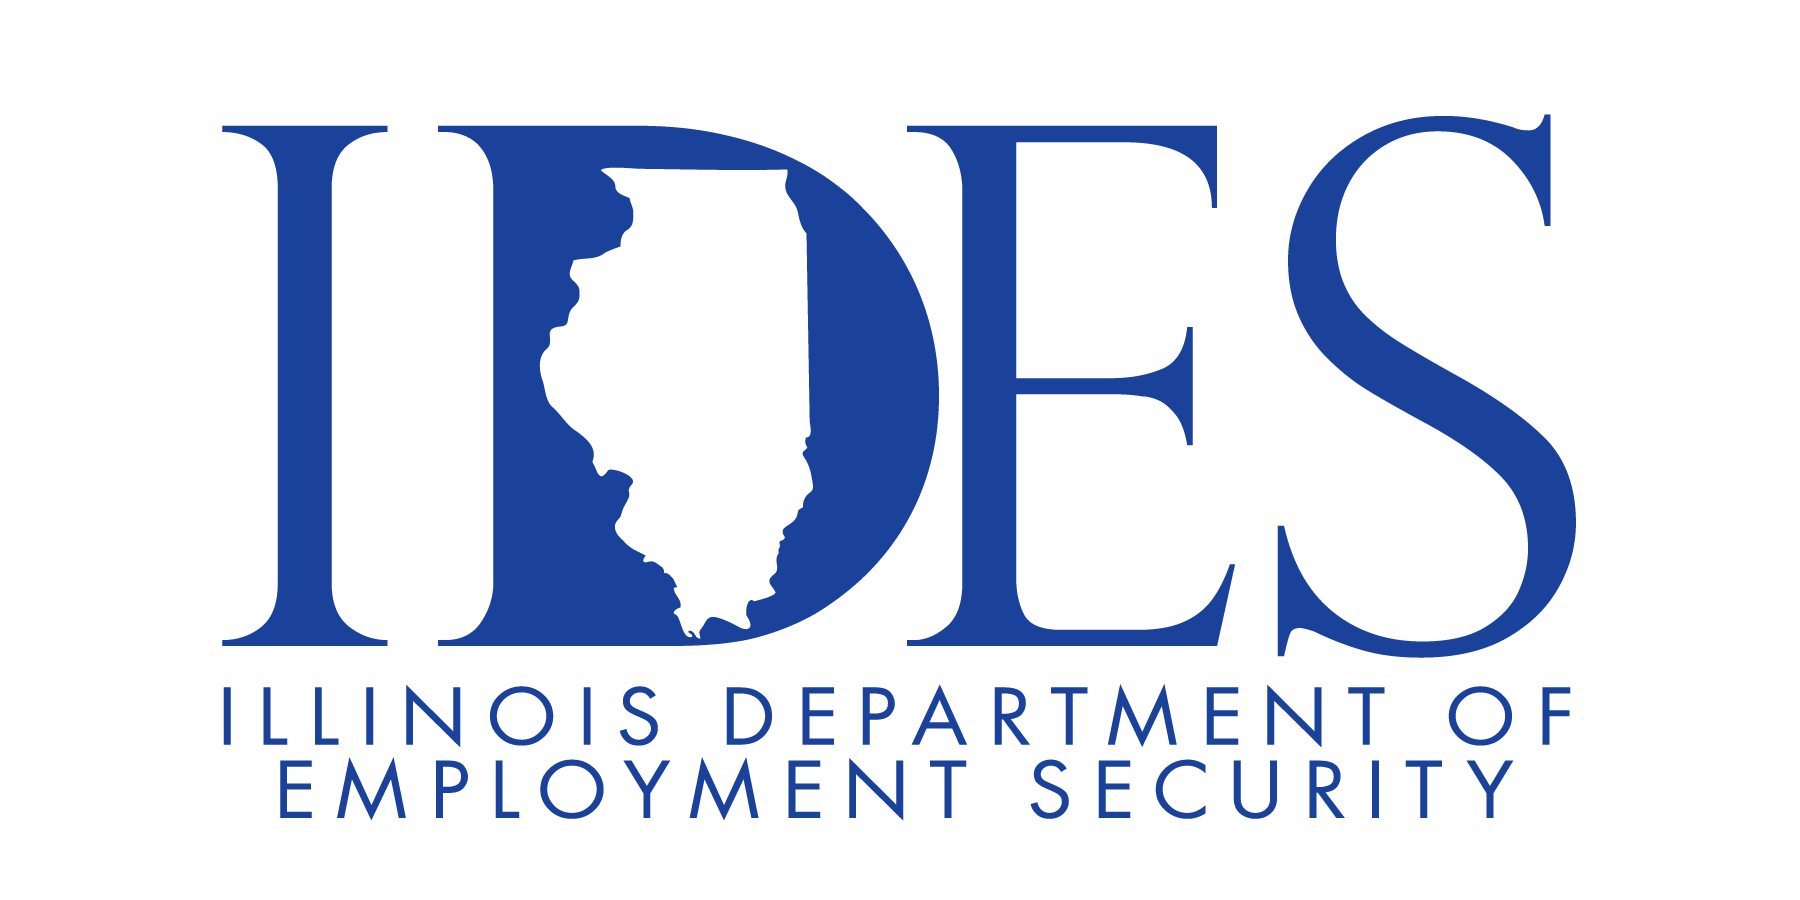 July unemployment continues trend of year-over-year improvements in Rockford metro area, Illinois